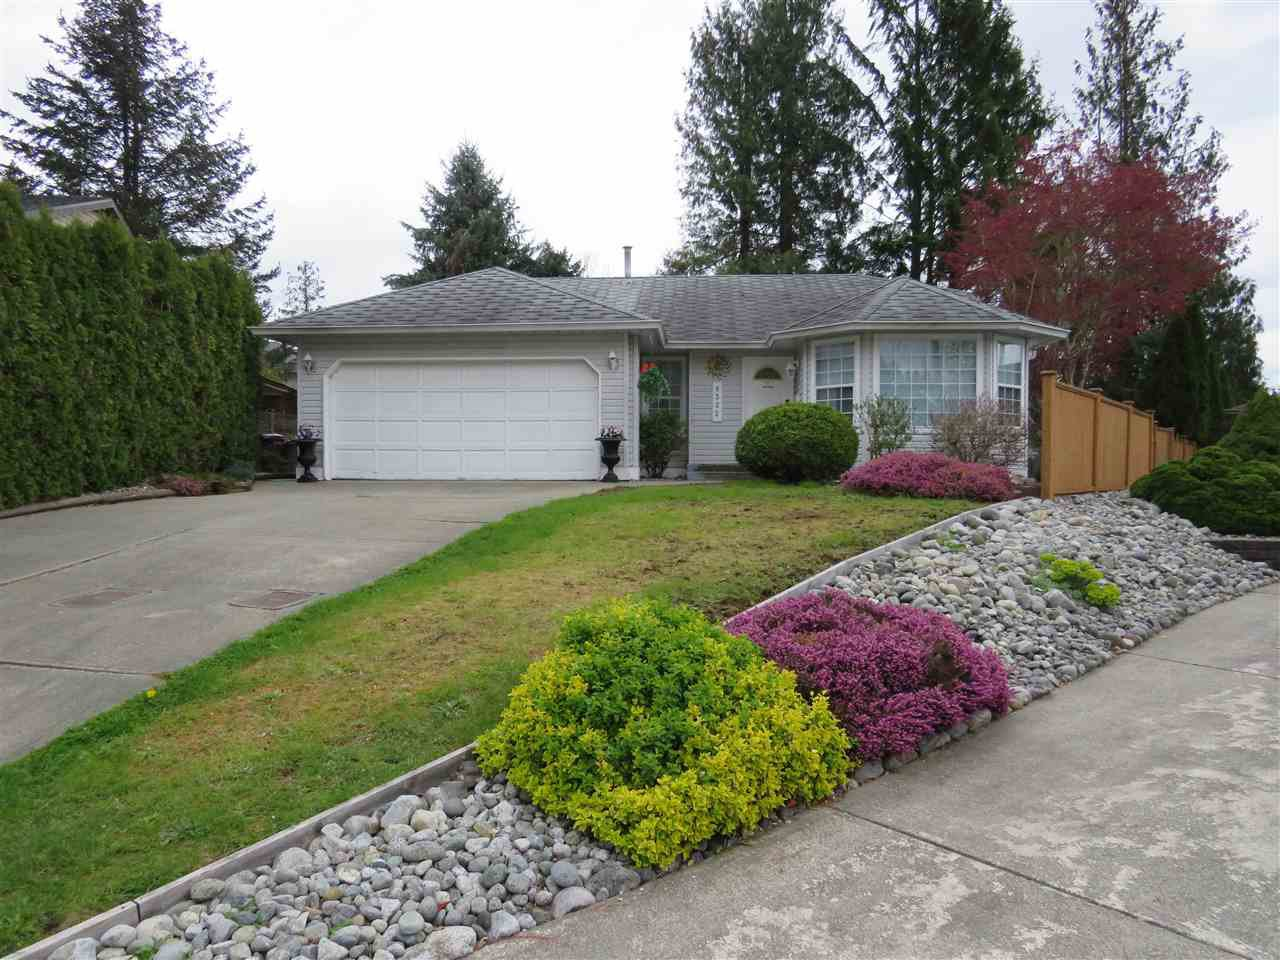 Main Photo: 8322 GALE Street in Mission: Mission BC House for sale : MLS®# R2358946